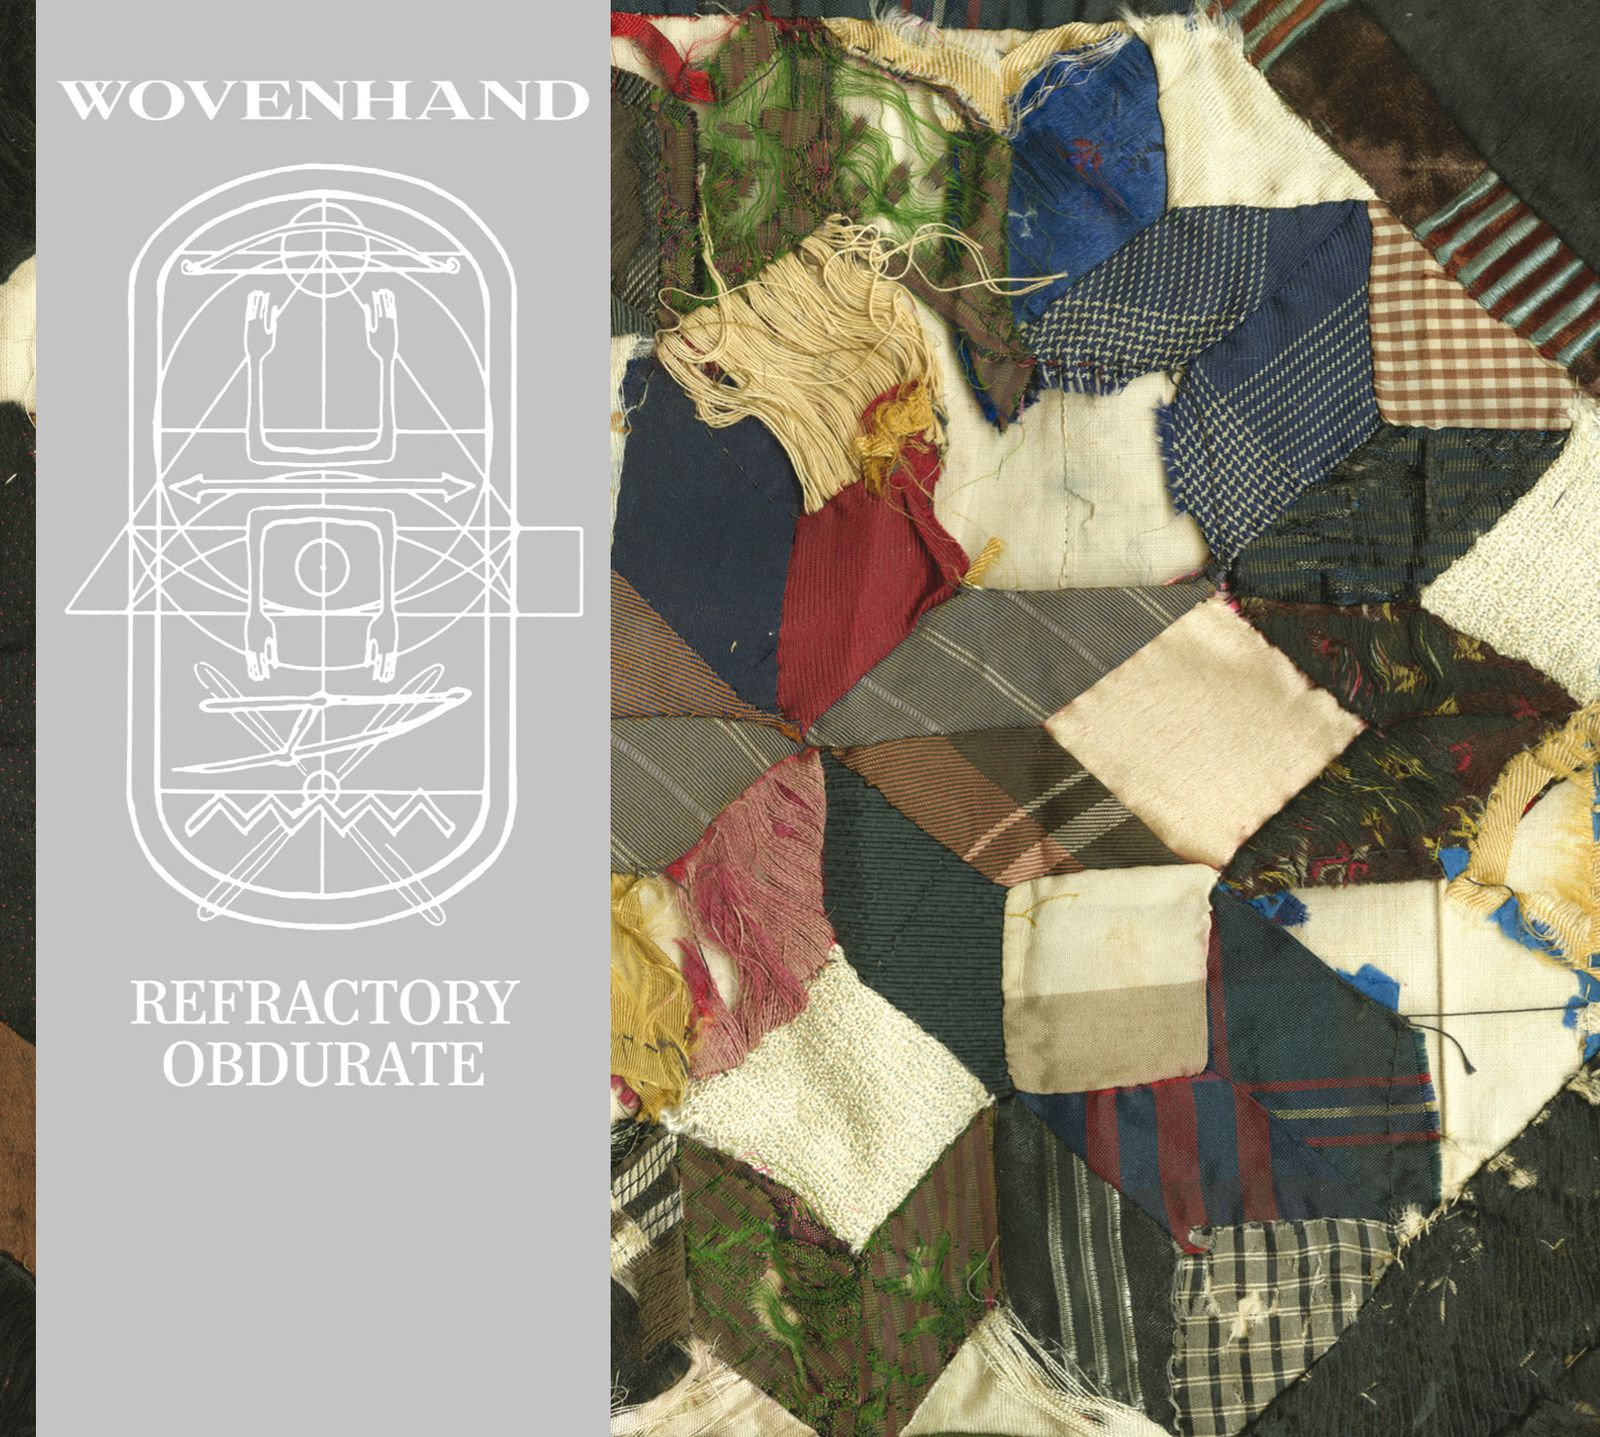 WOVENHAND - Refractory obdurate (2014)